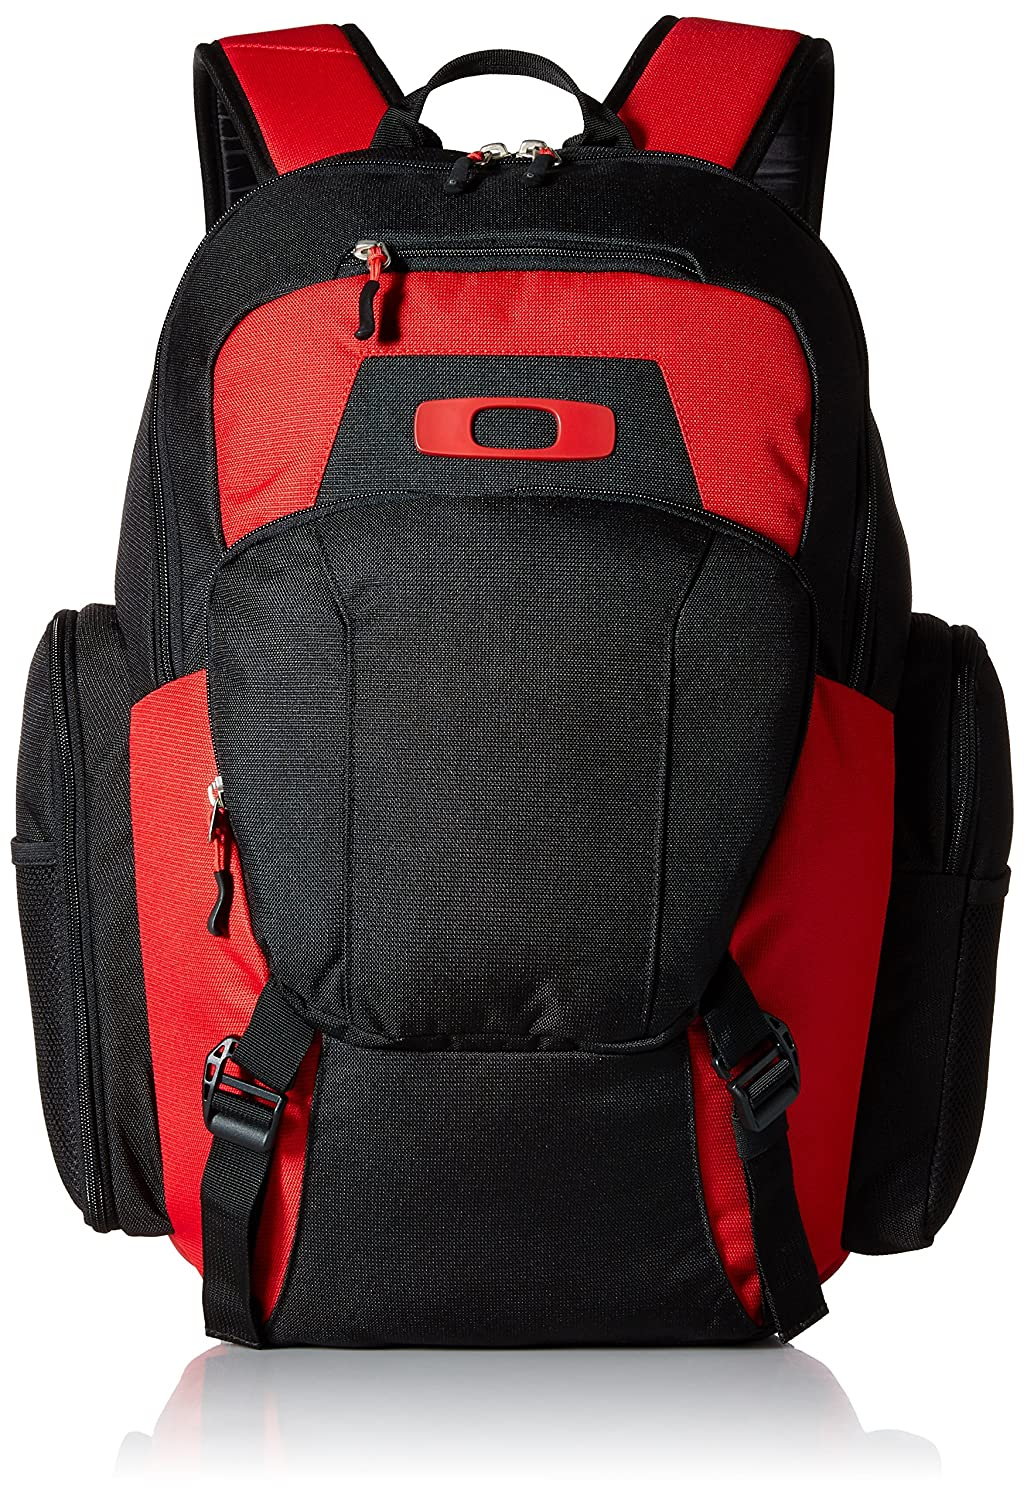 28adfbe68f Amazon.com  Oakley Men s Blade Wet Dry 30 Backpack  Clothing